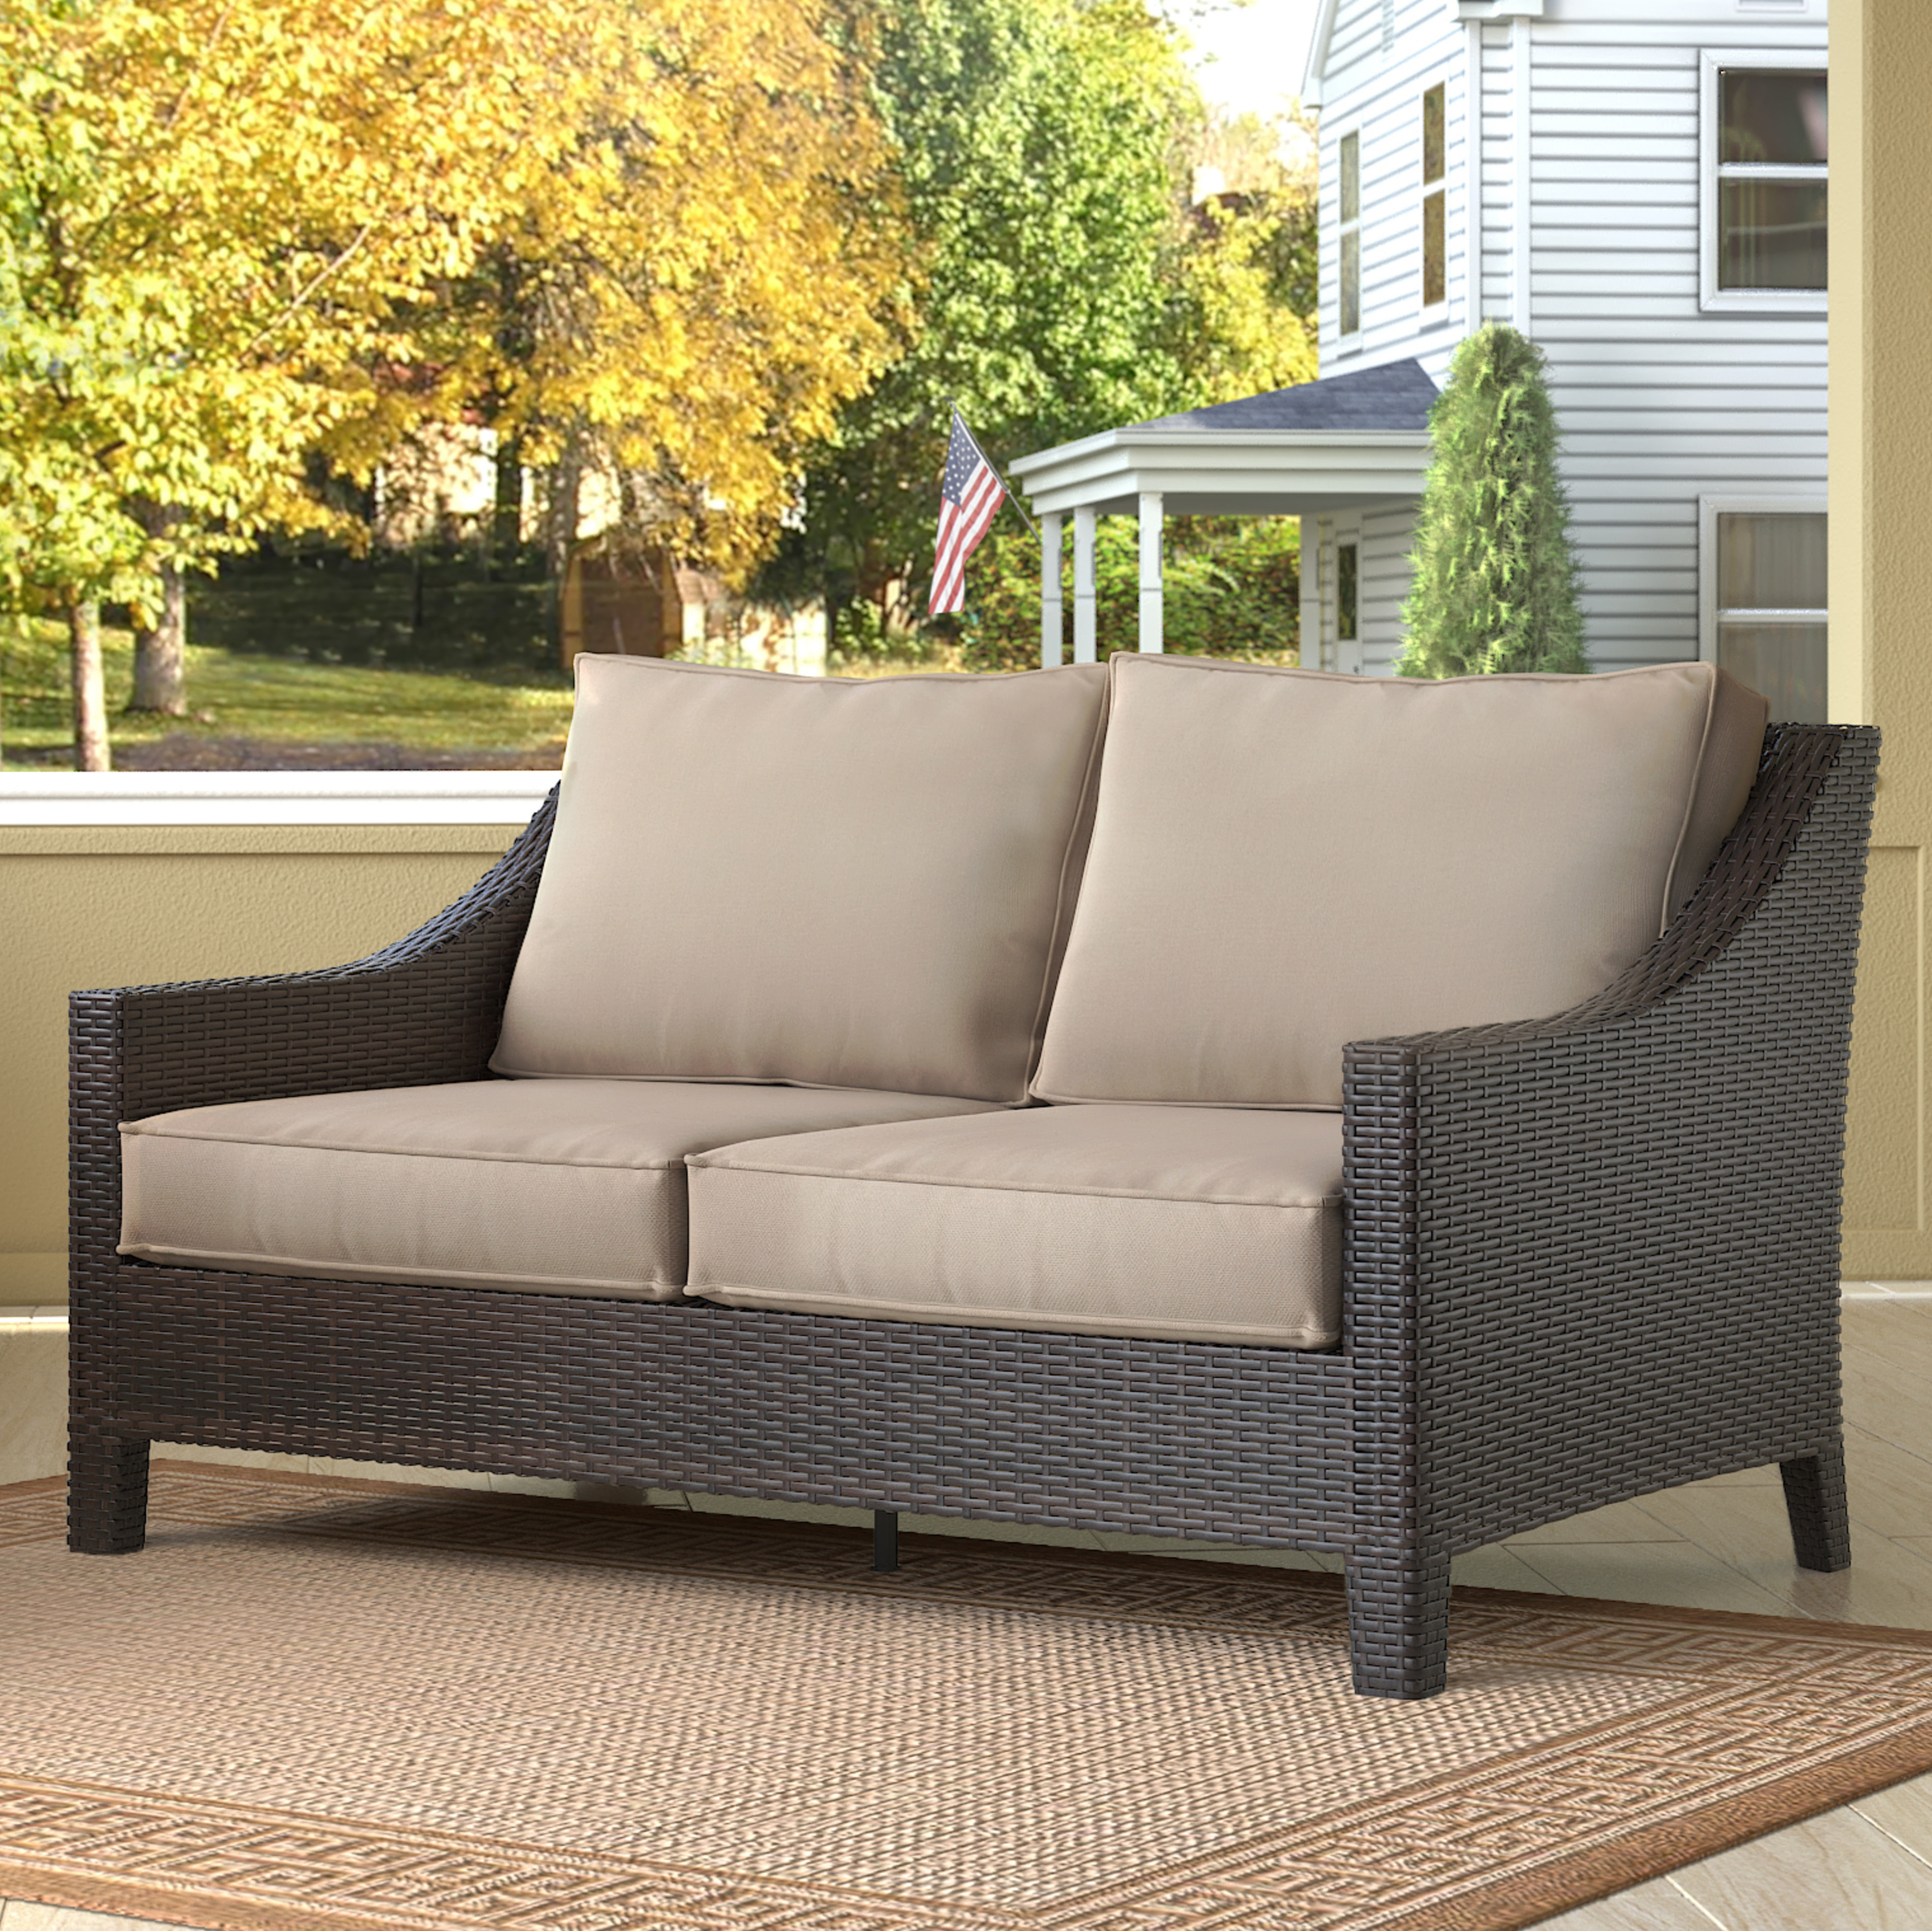 Most Up To Date Tahoe Outdoor Wicker Loveseat With Cushions In Wicker Loveseats (View 8 of 20)